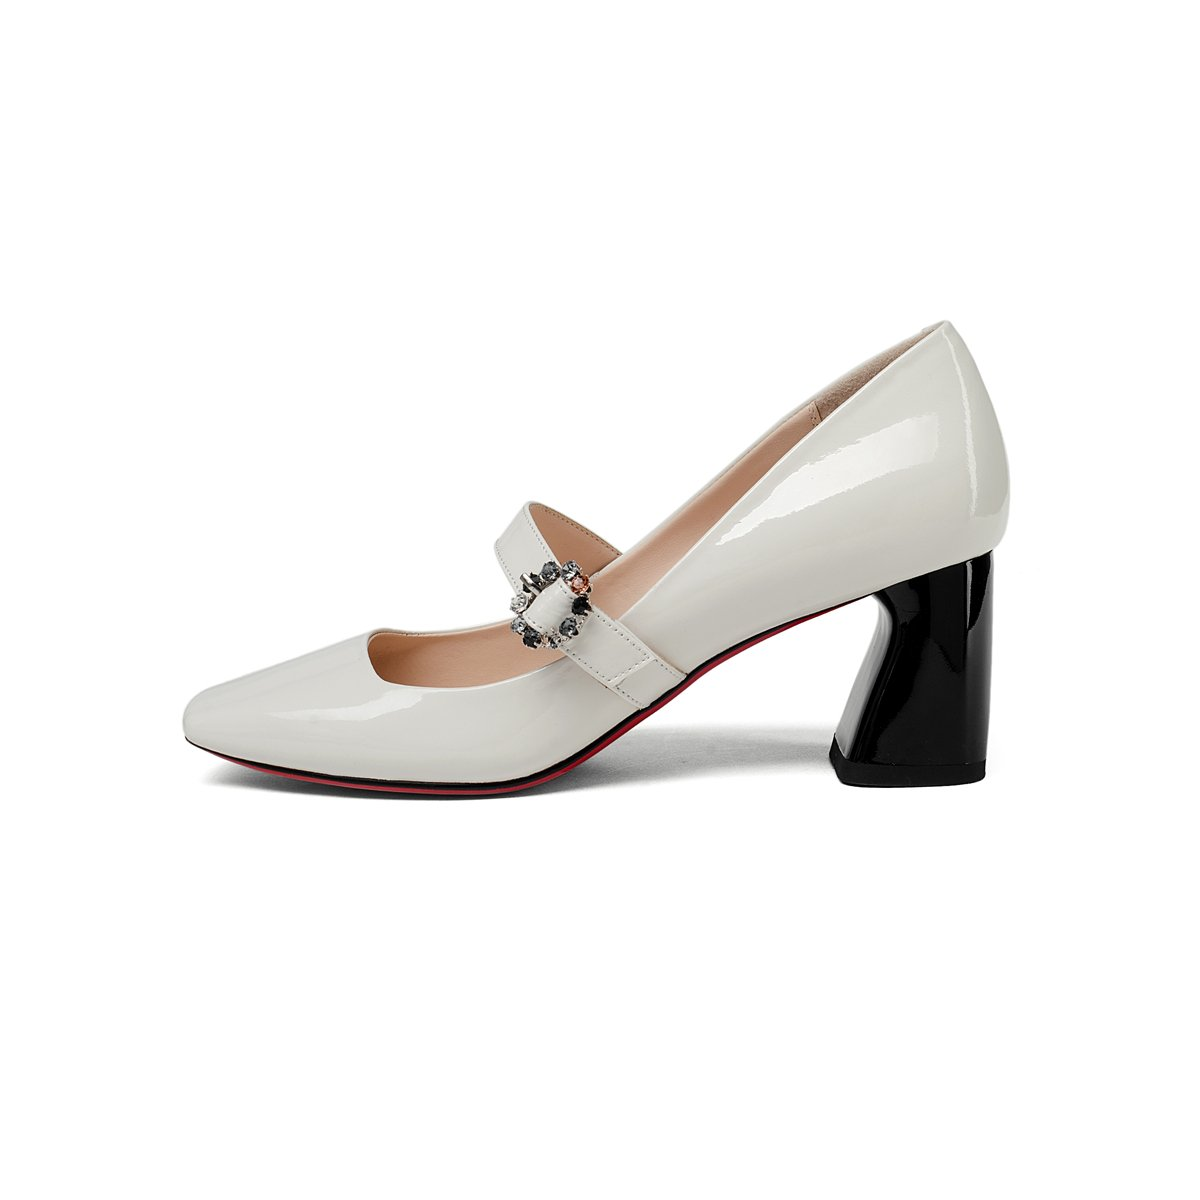 Dulce Diva Patent Leather Square Toe Chunky Mid Heel Buckle Mary Jane Shoes for Women Office